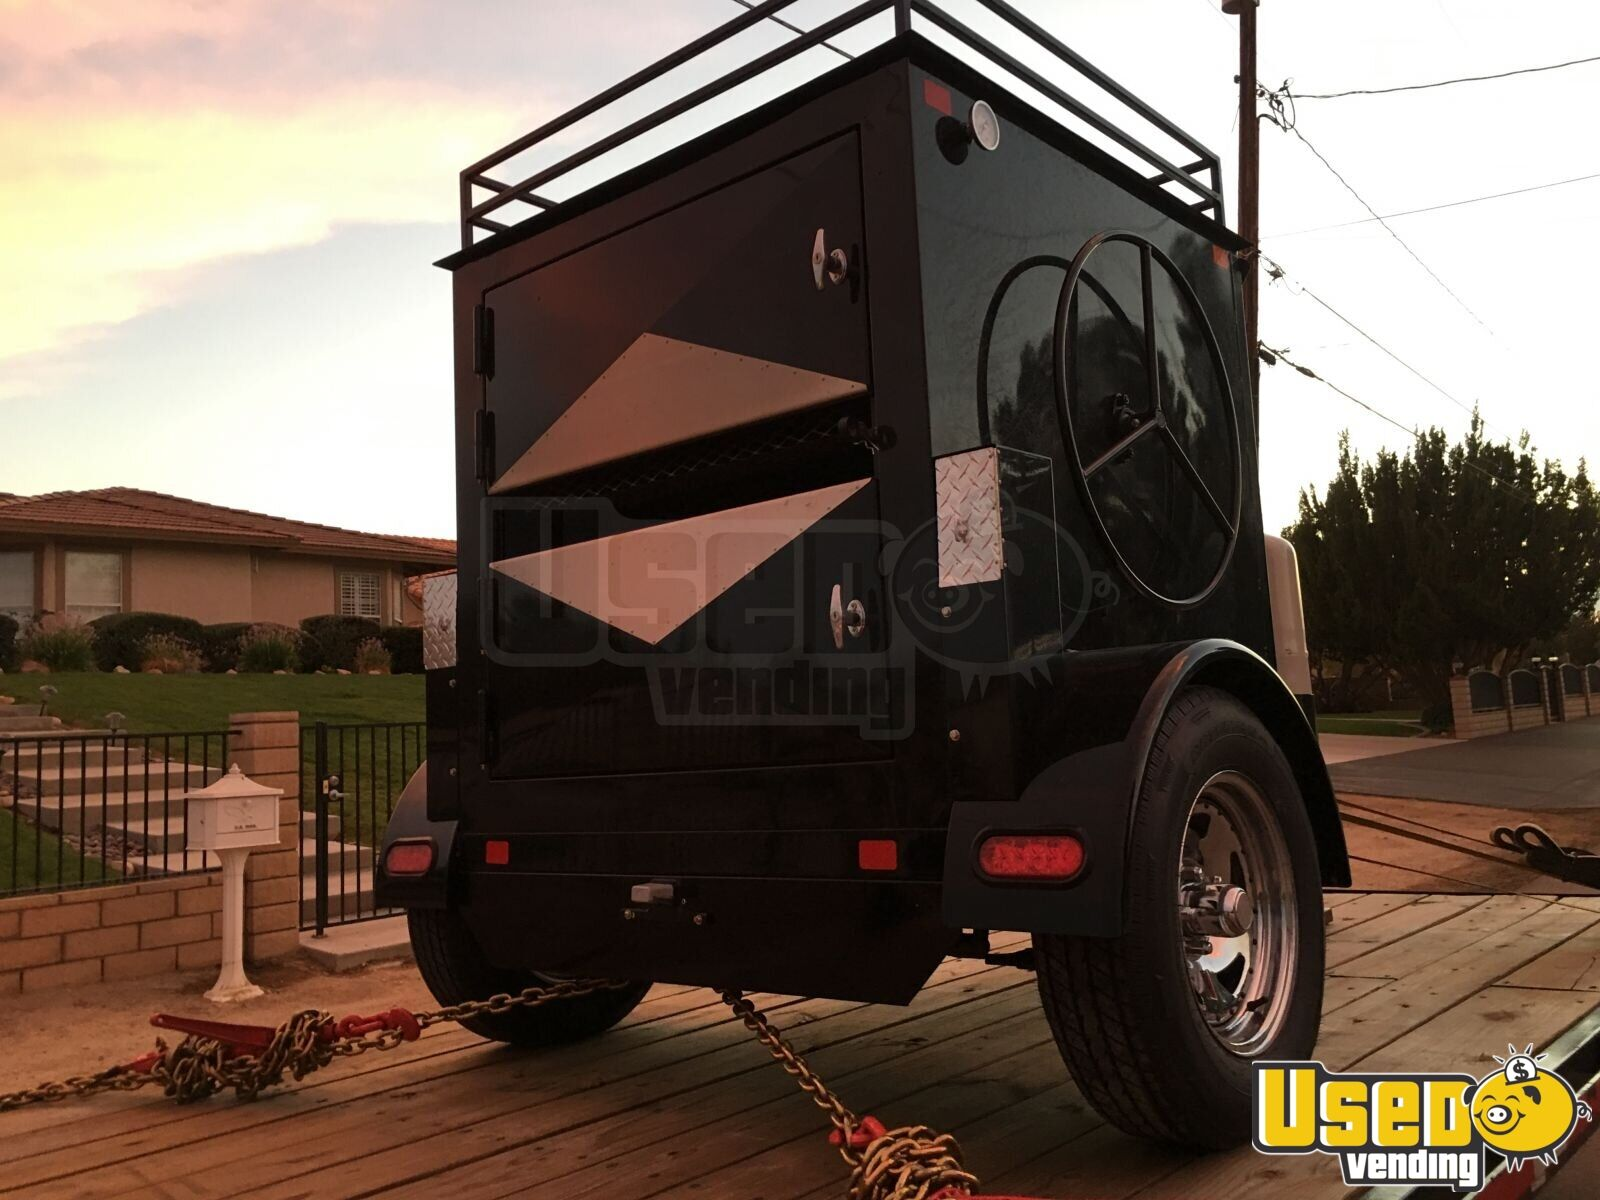 2018 Texas Corn Roaster Corn Roasting Trailer Removable Trailer Hitch California for Sale - 2